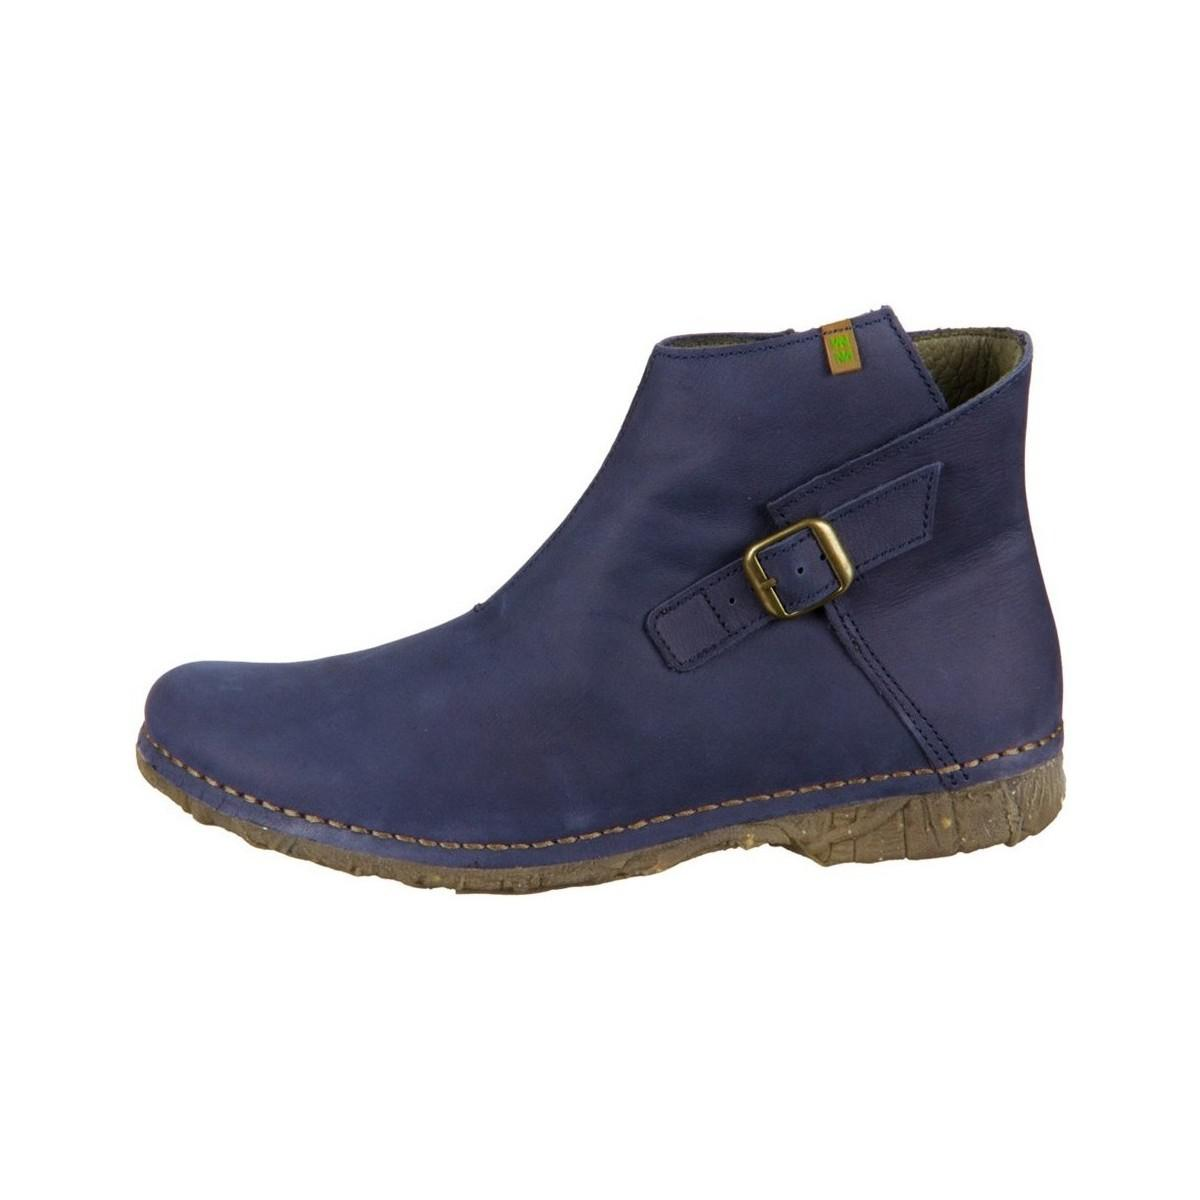 El Naturalista Angkor Women's Mid Boots In Multicolour in Blue